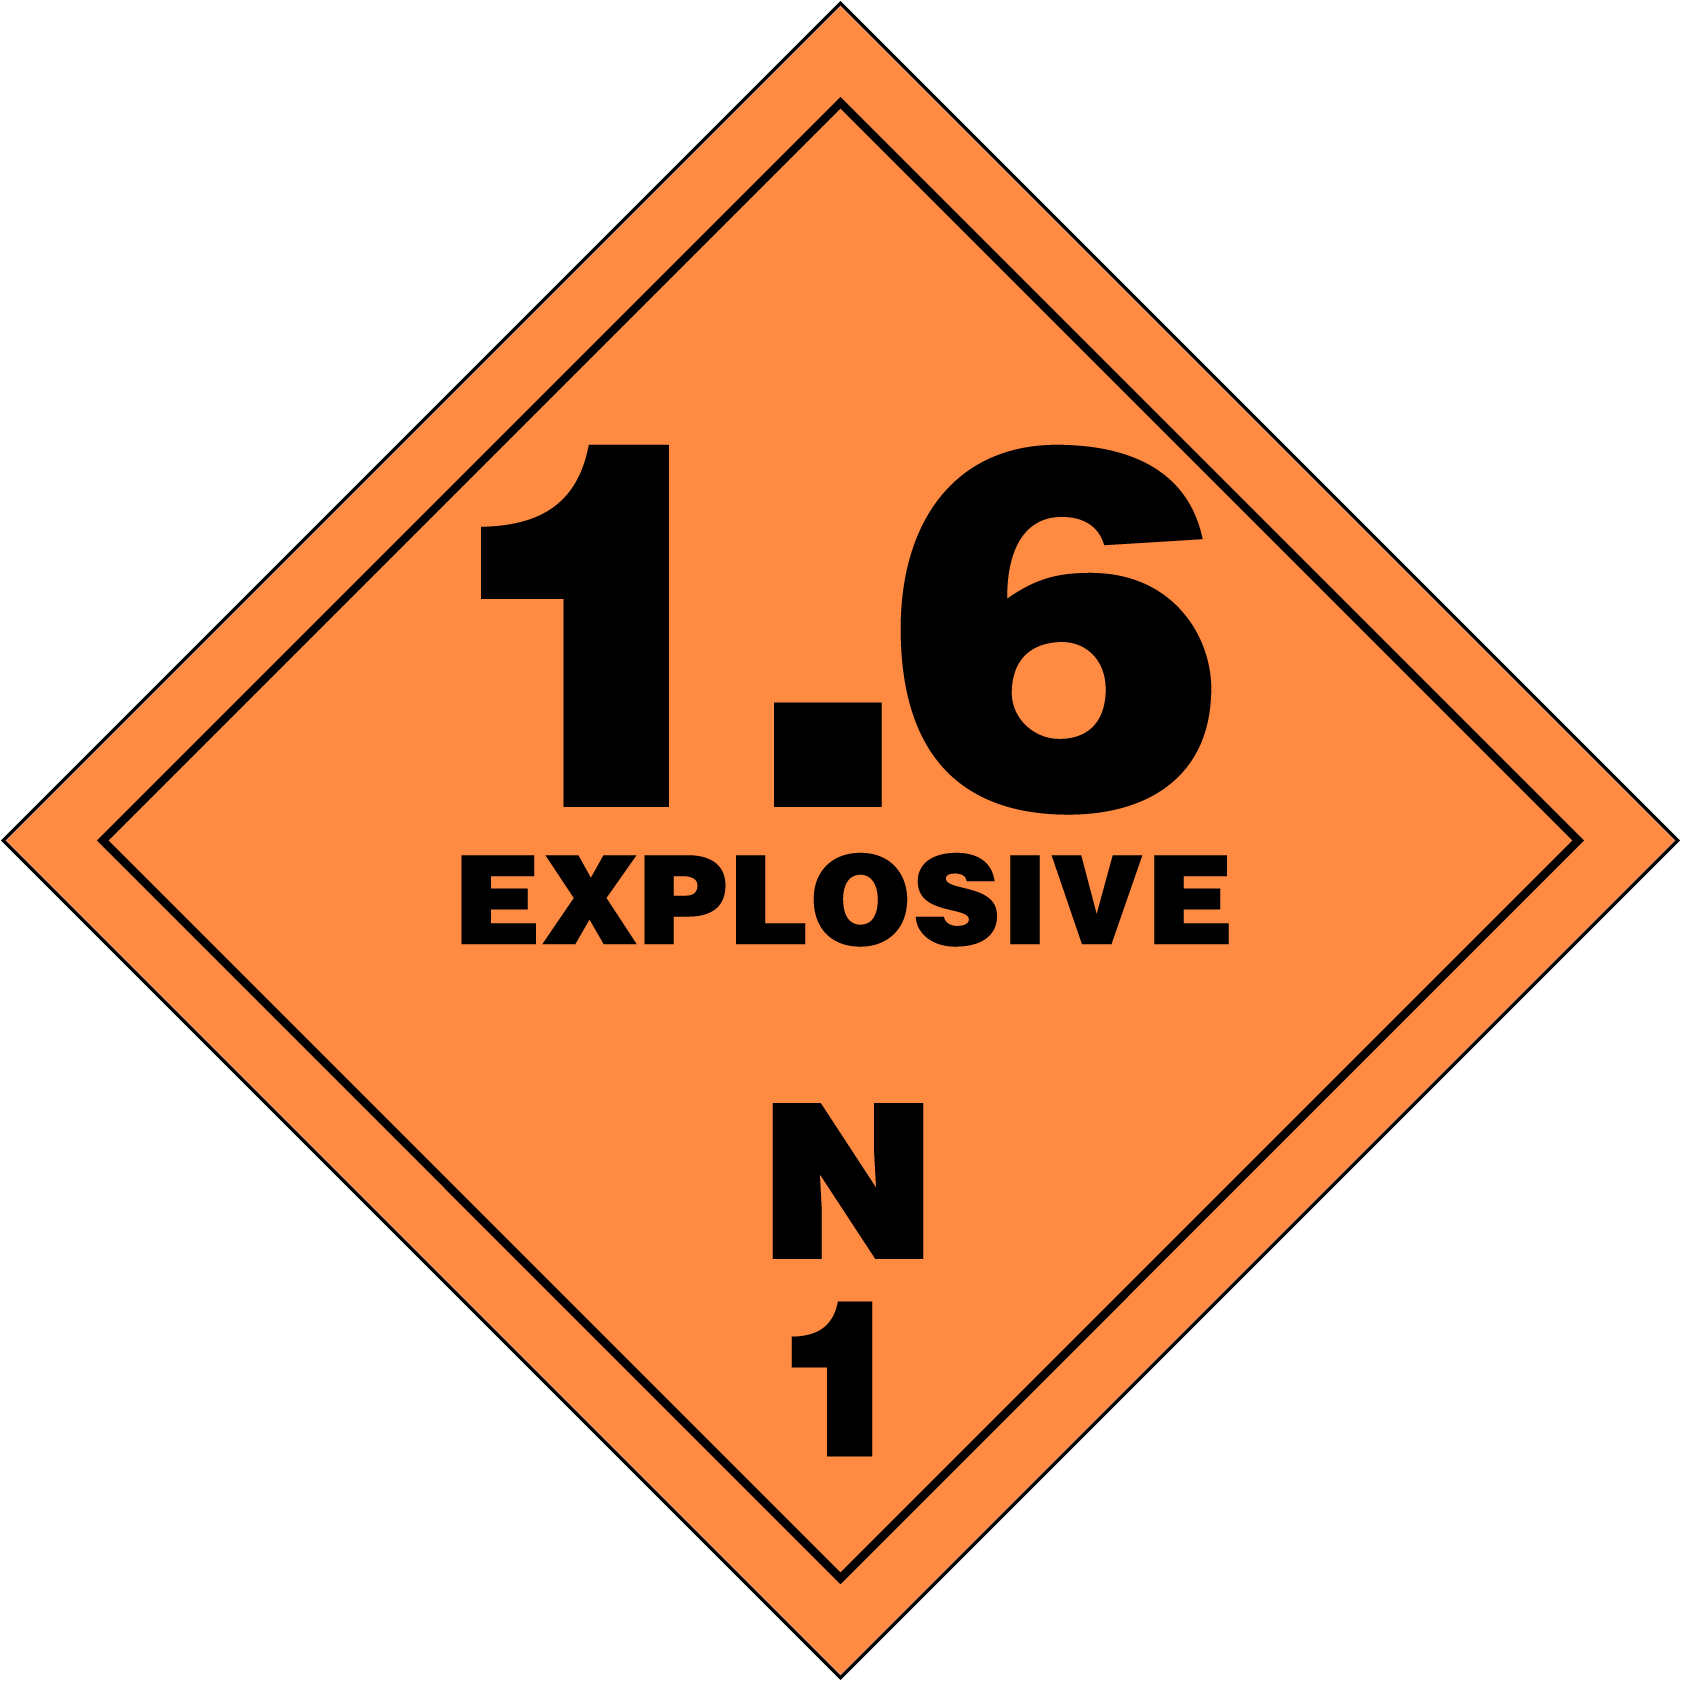 Extremely insensitive explosives (1.6N)